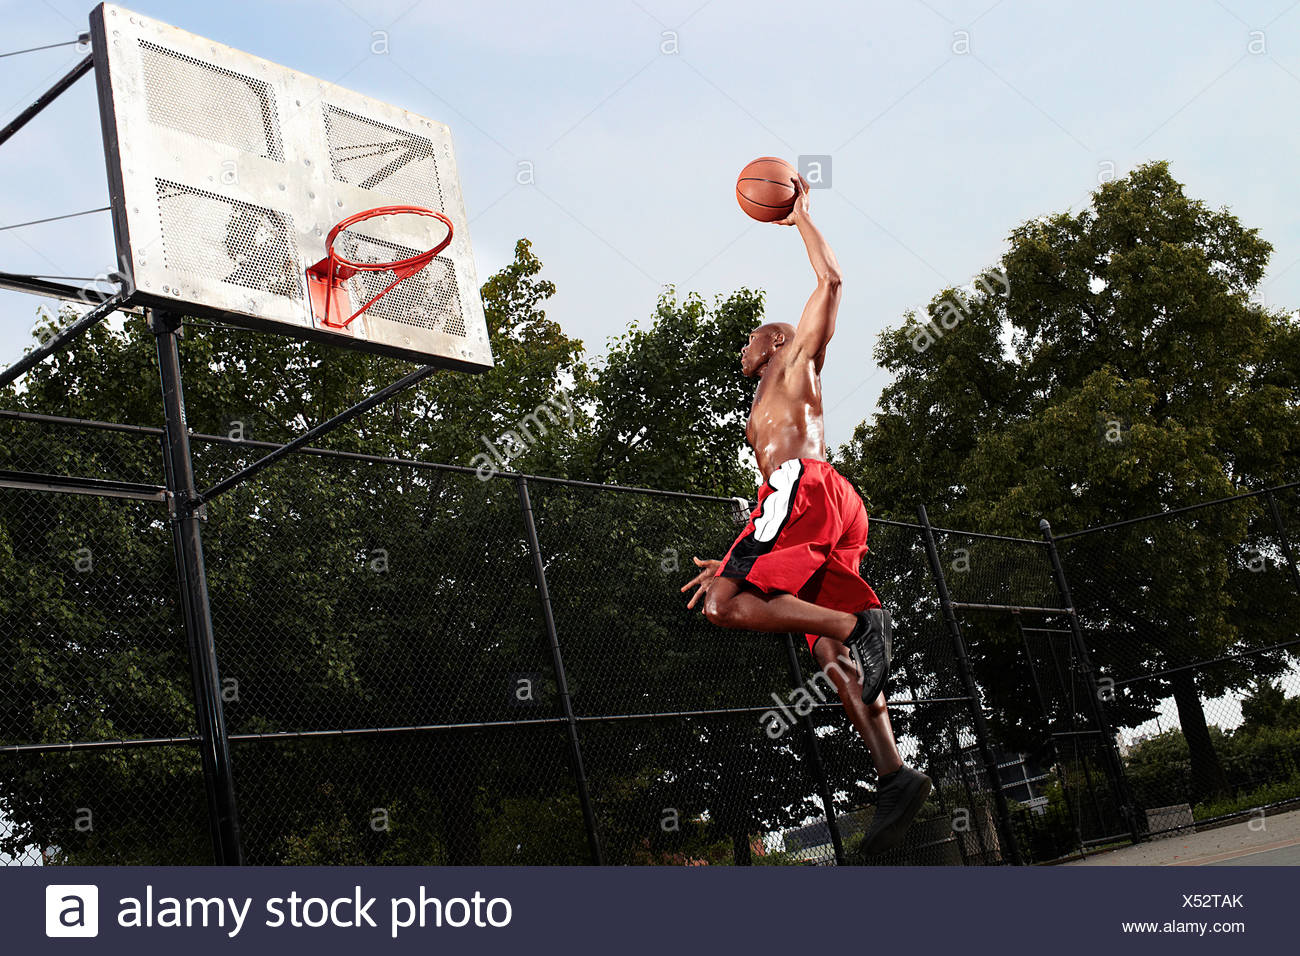 Young man leaping at basketball hoop - Stock Image